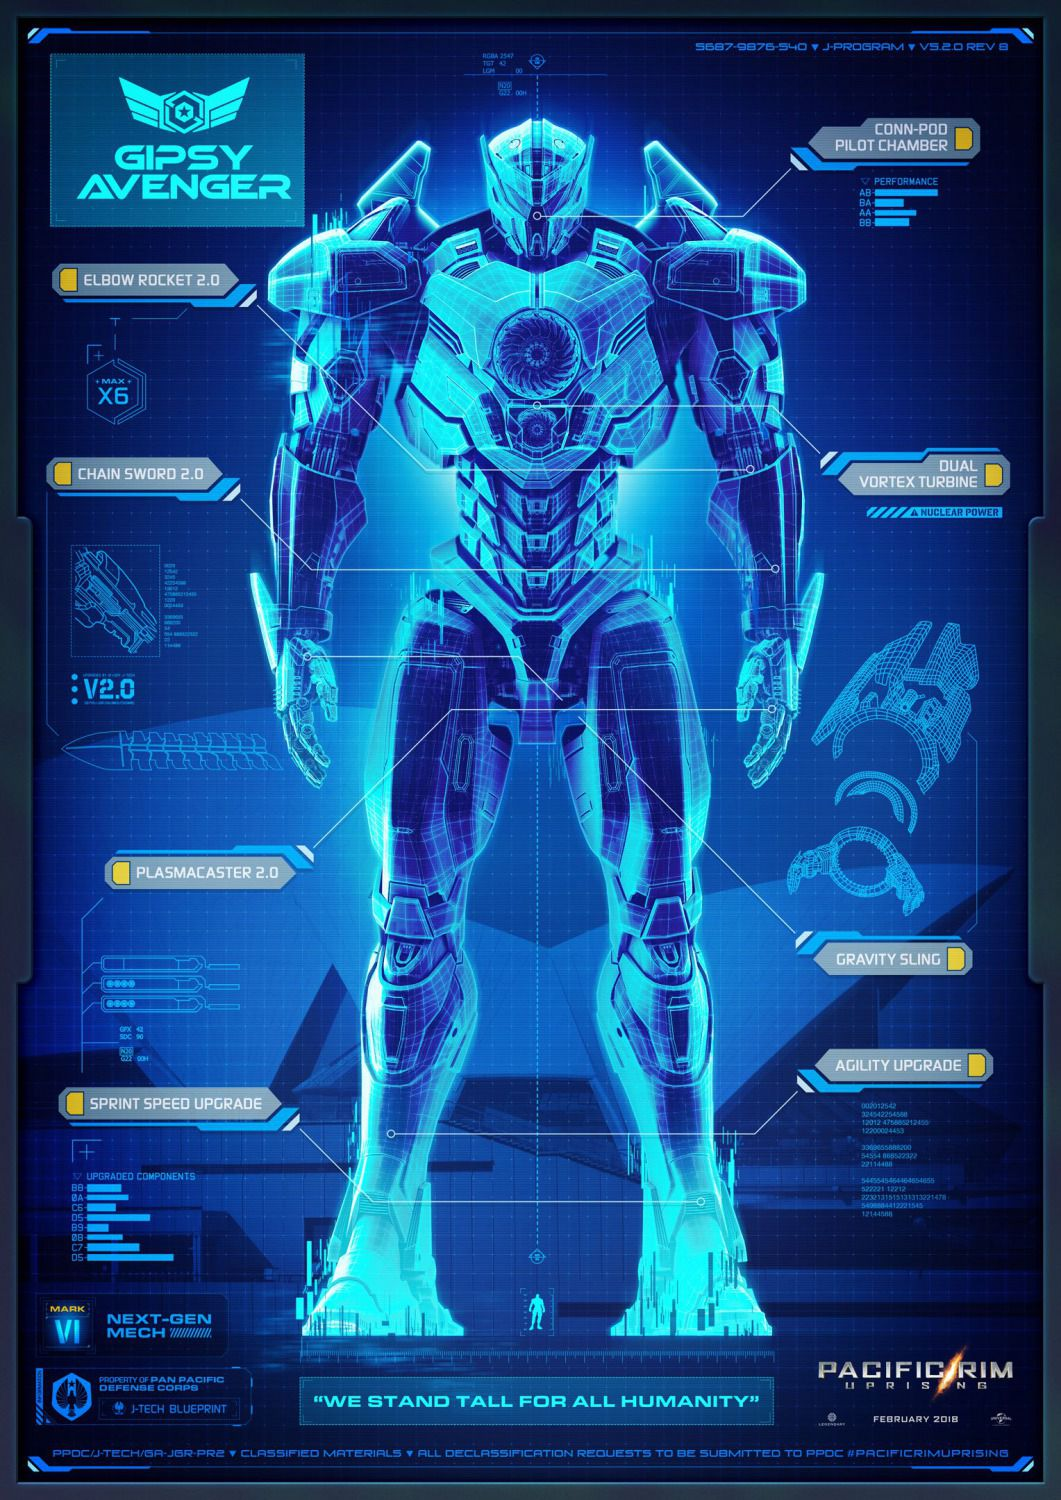 Pacific Rim Uprising - Gipsy Avenger - Next Generation Mech Mark IV - Pan Pacific Defense Corps